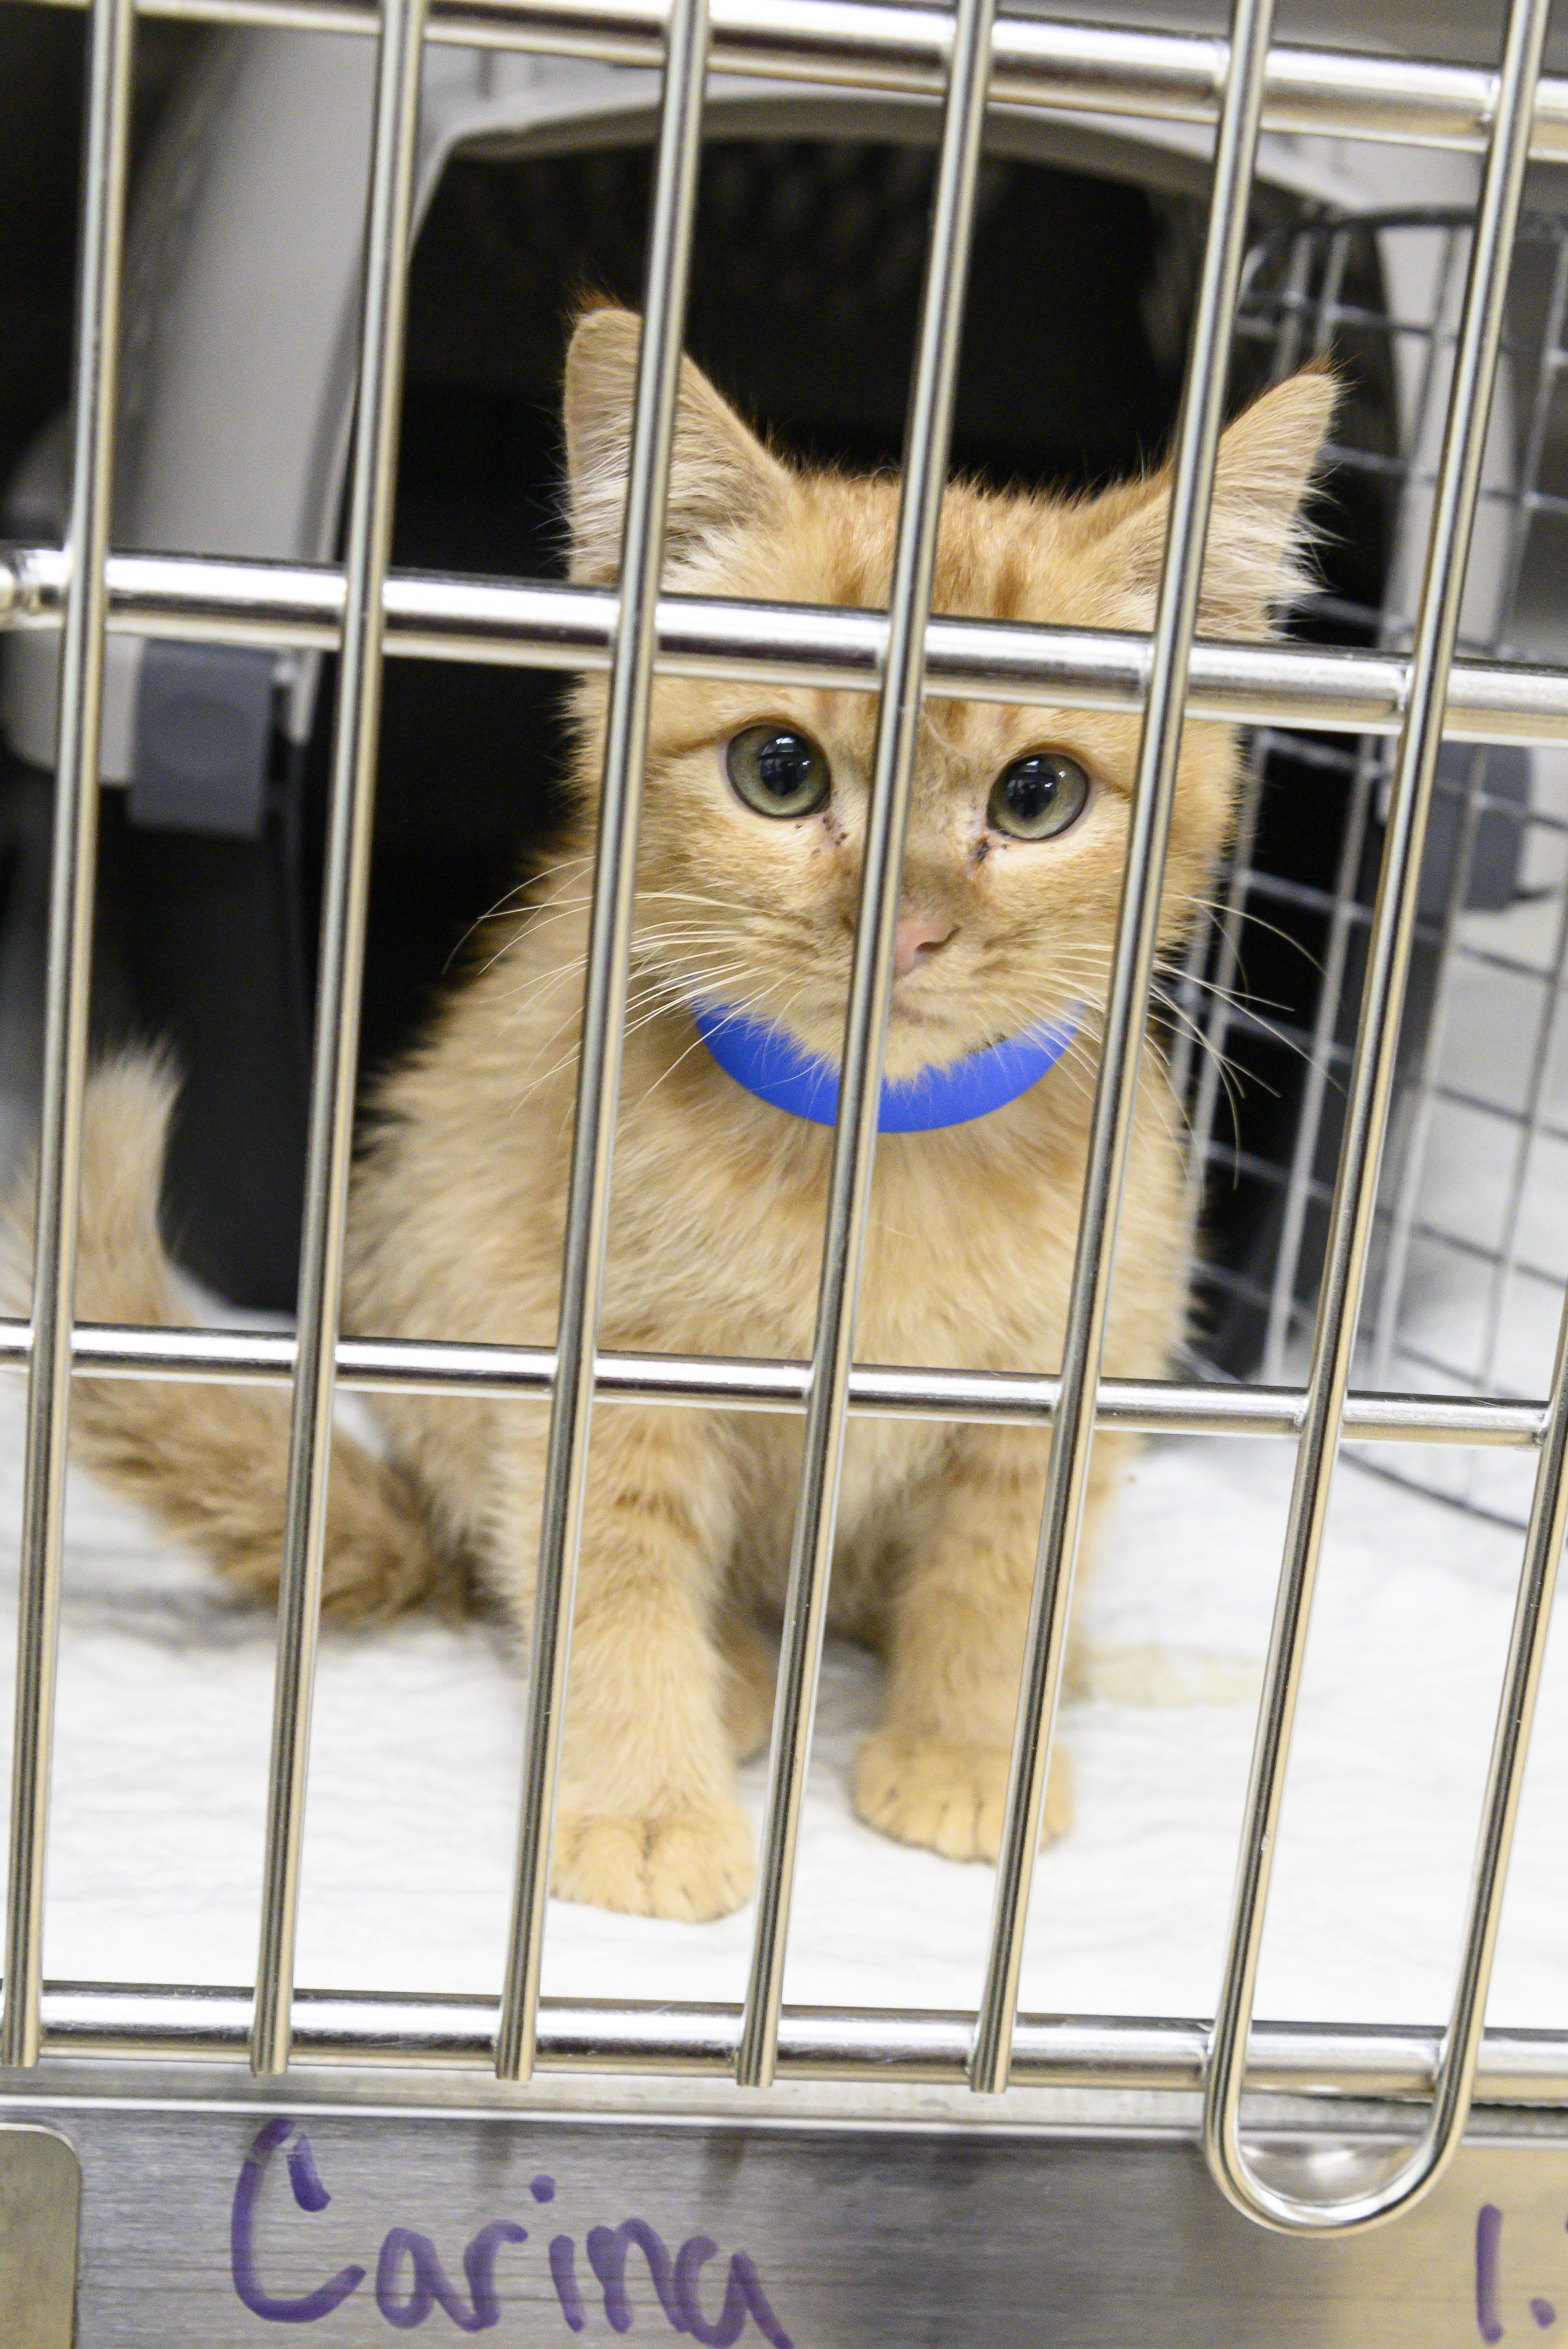 A shelter kitten in its kennel